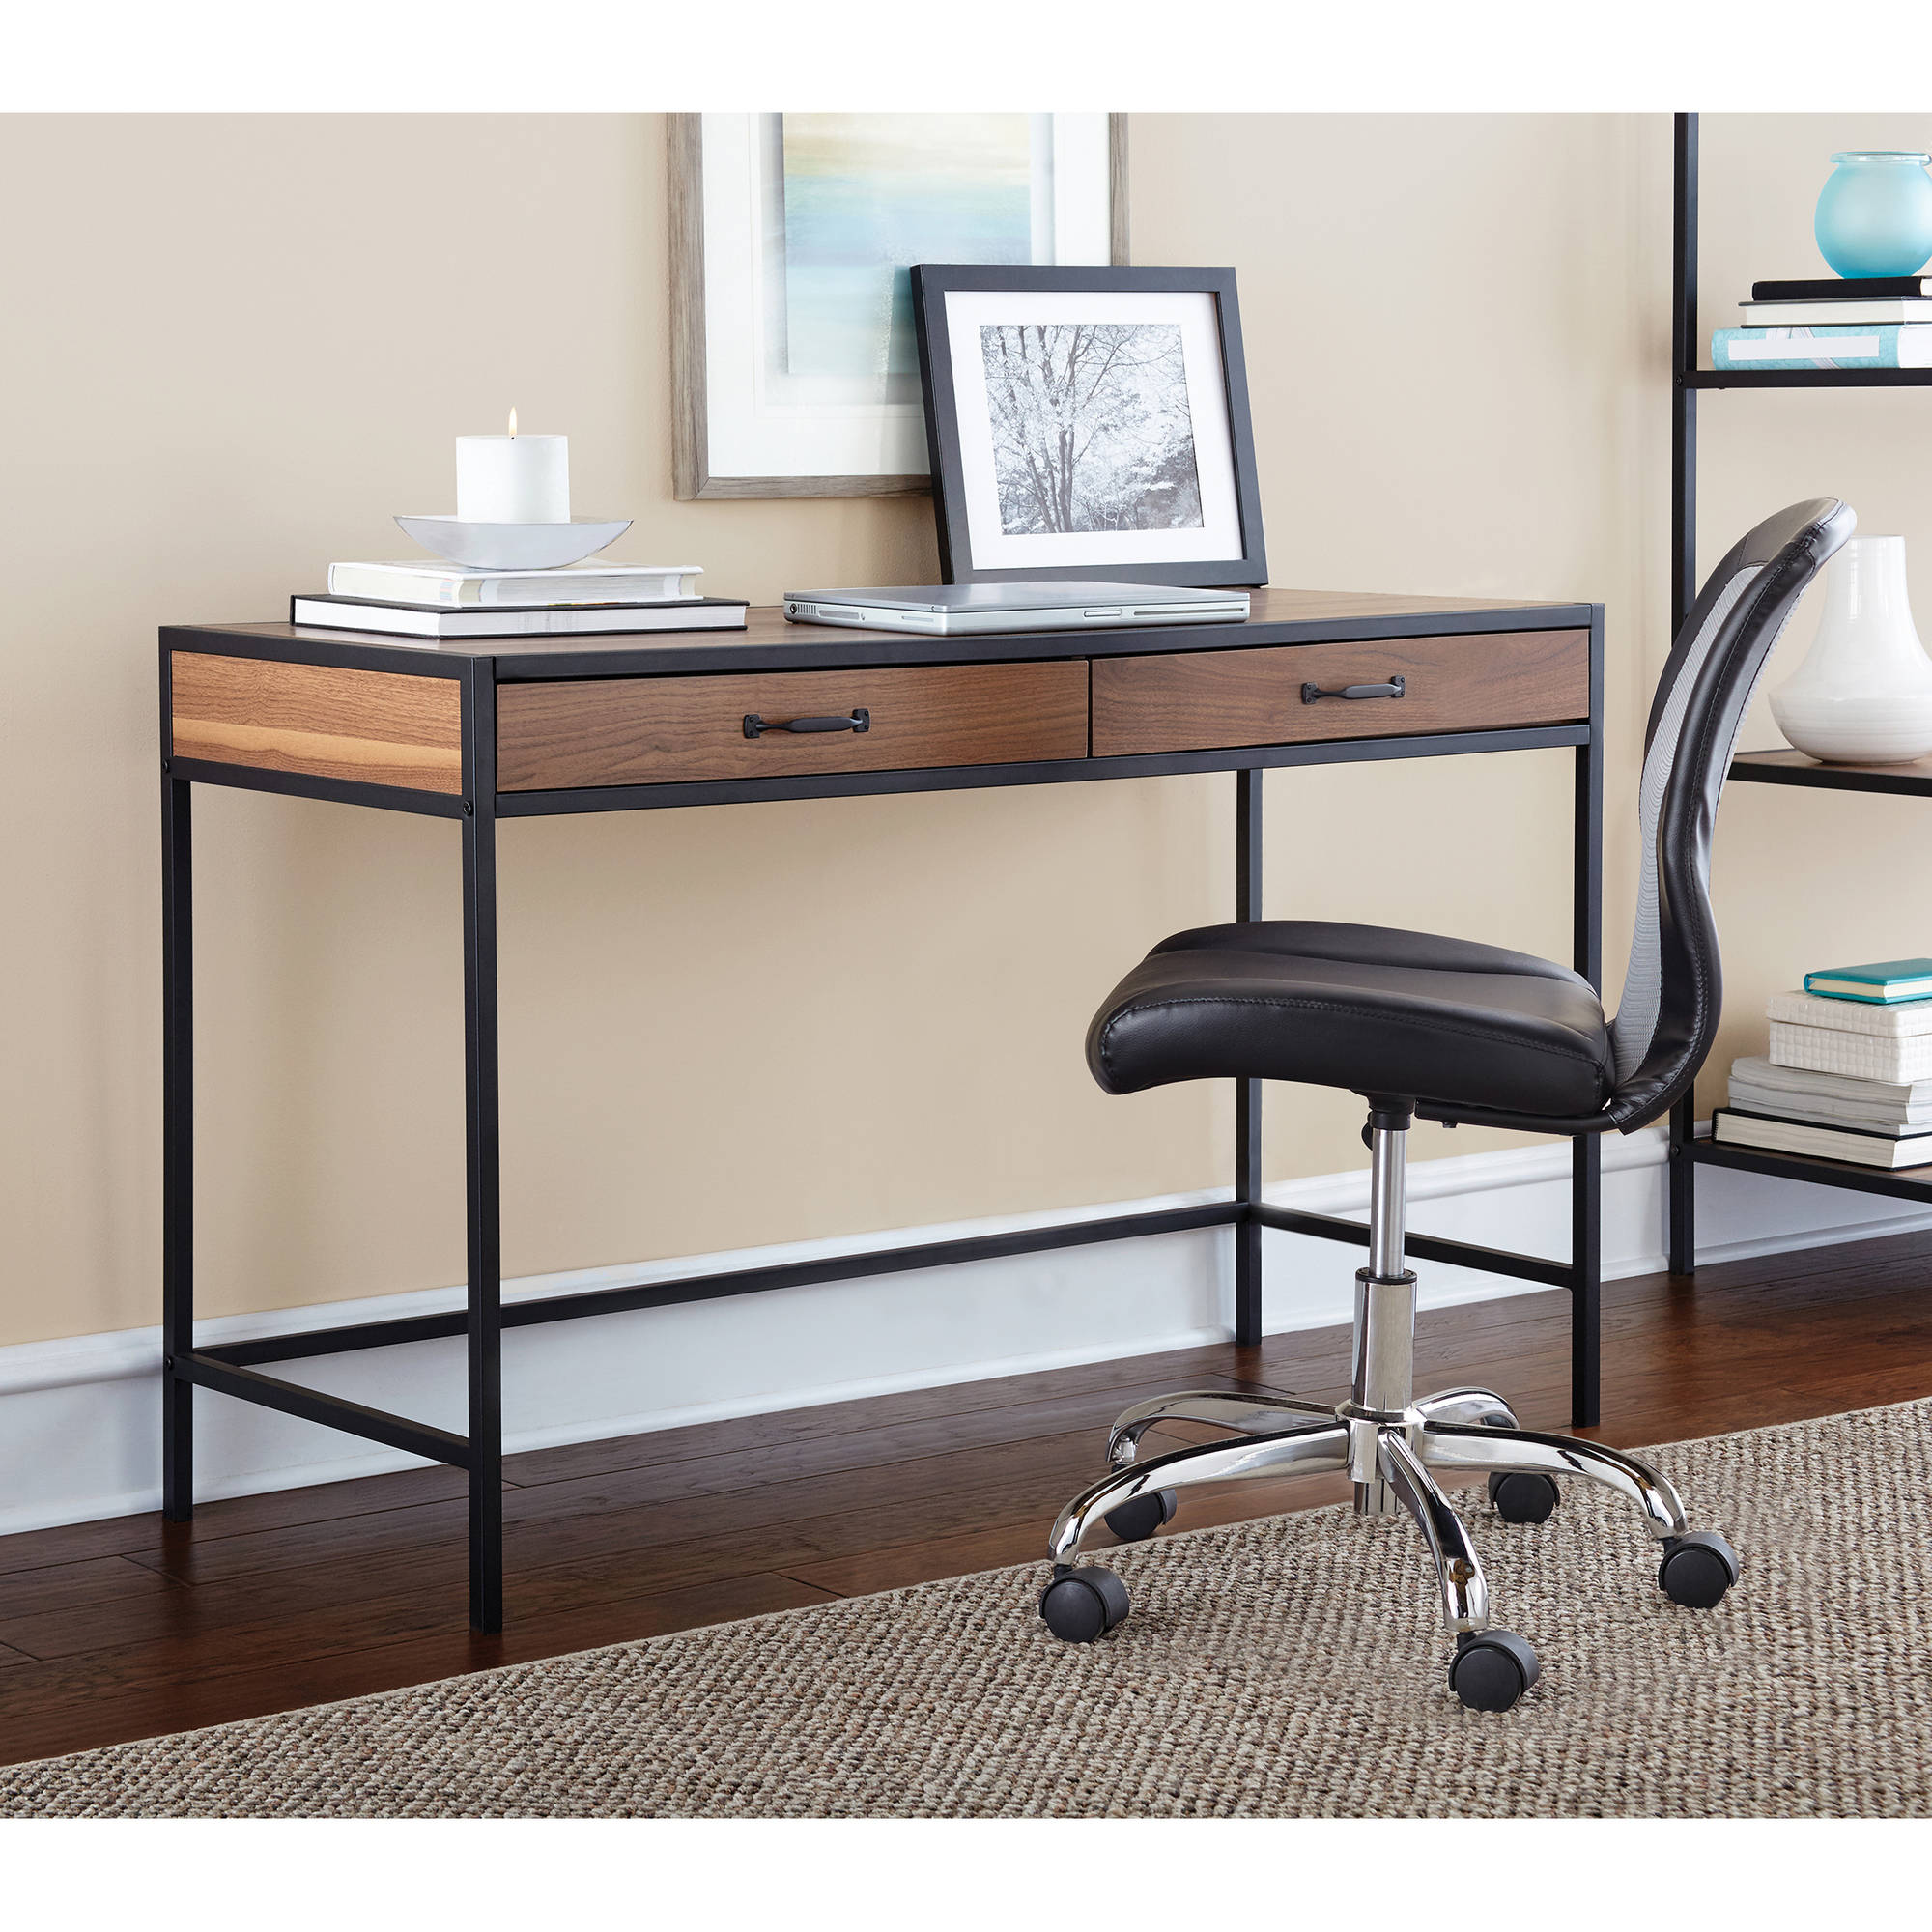 Mainstays Metro Desk with 2 Drawers, Multiple Finishes